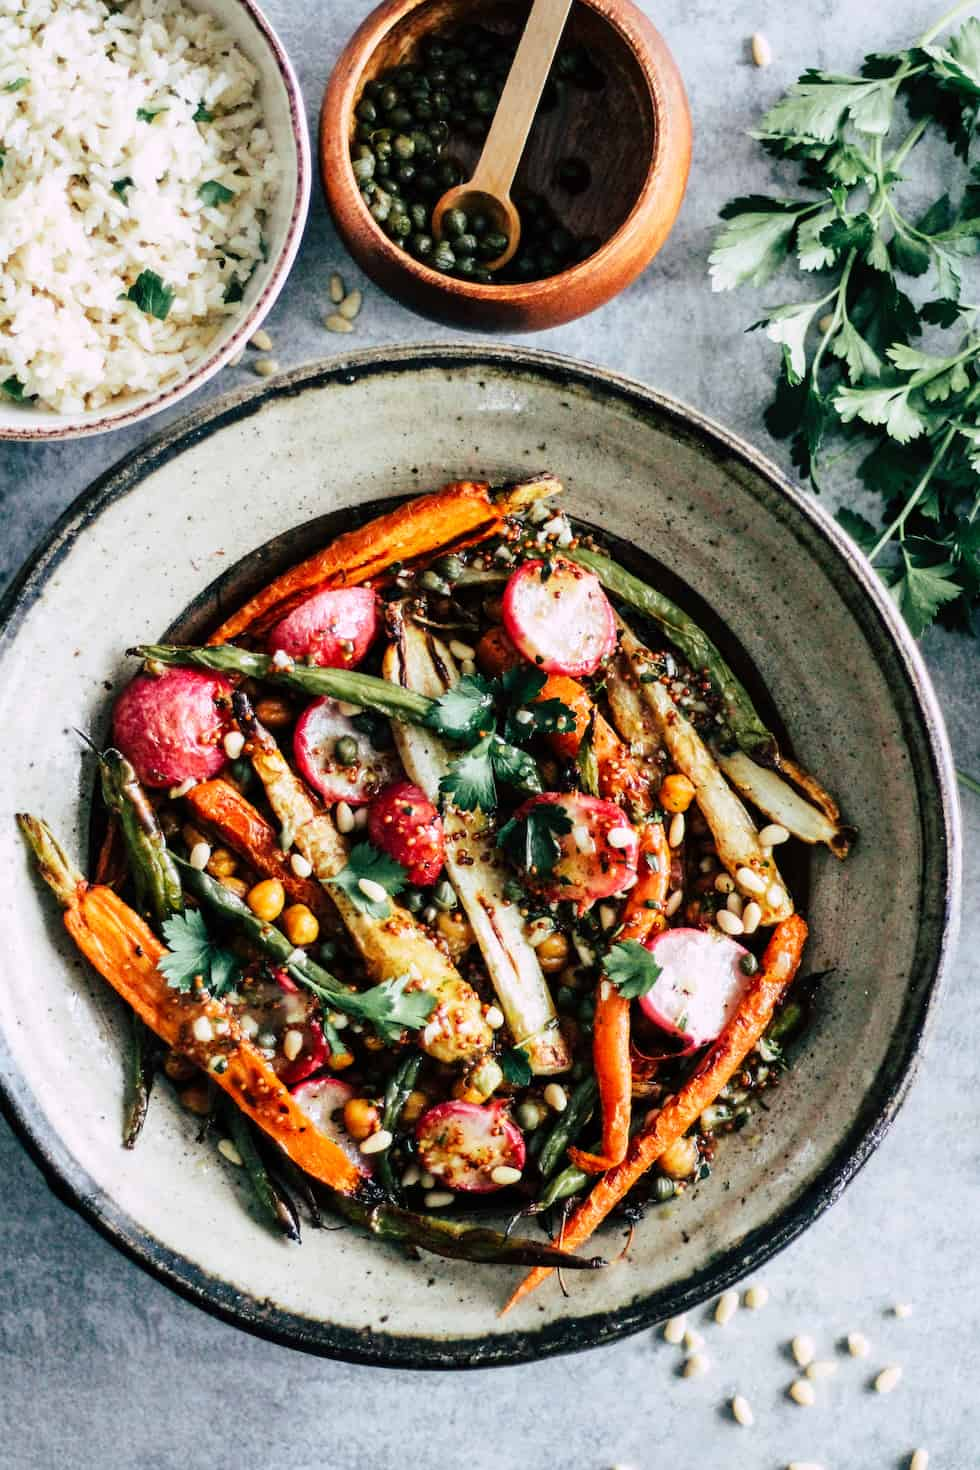 Chickpeas, carrots, and green beans in a stone bowl with smaller bowl of rice and herbs.